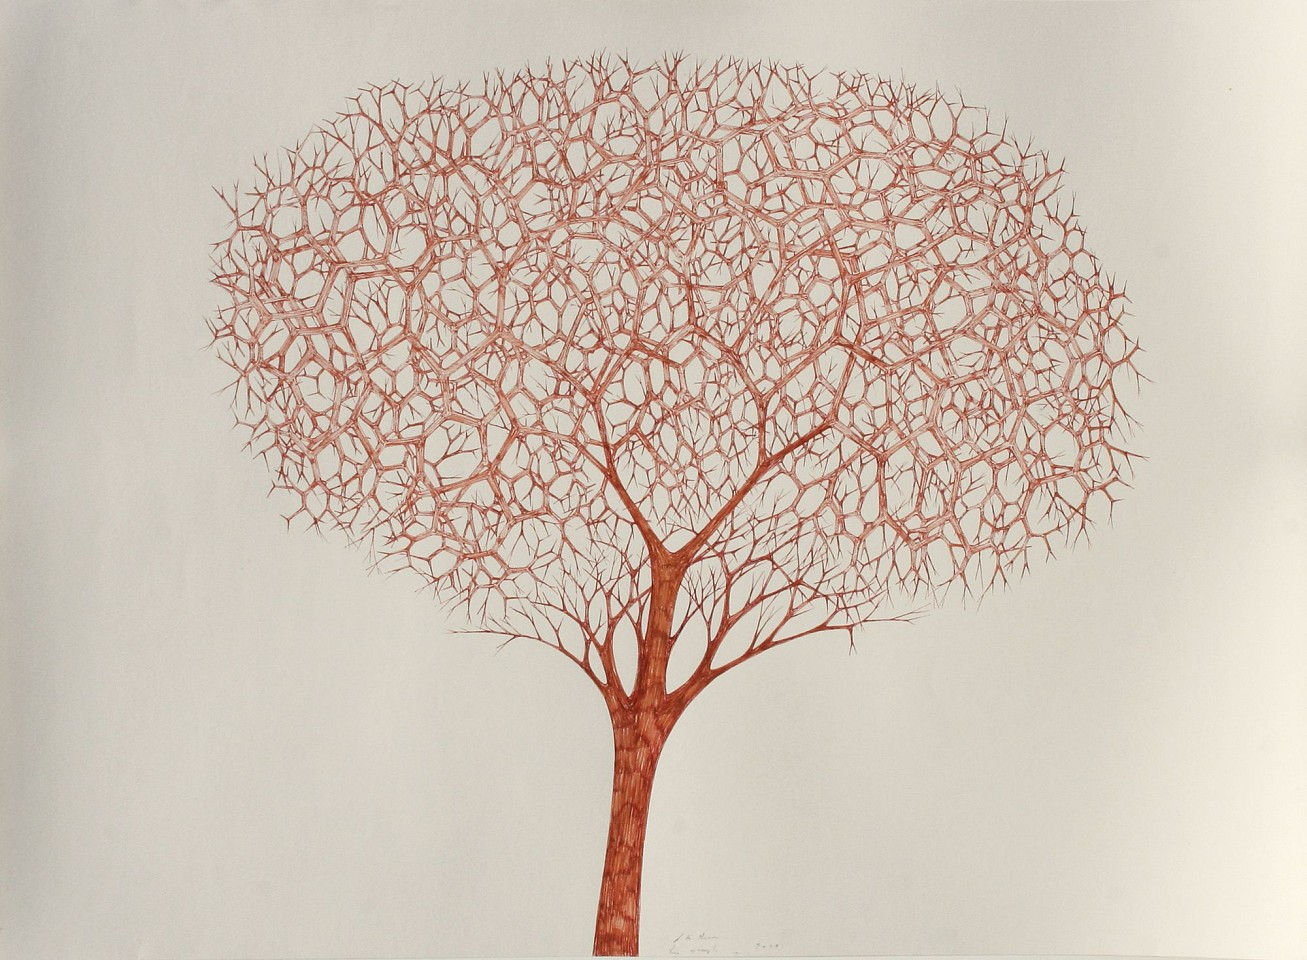 Stewart Helm ,   Abstract -Tree II-(Untitled)  ,  2018     colored inks on paper ,  22 x 30 in. (55.9 x 76.2 cm)     SH-602     Price Upon Request